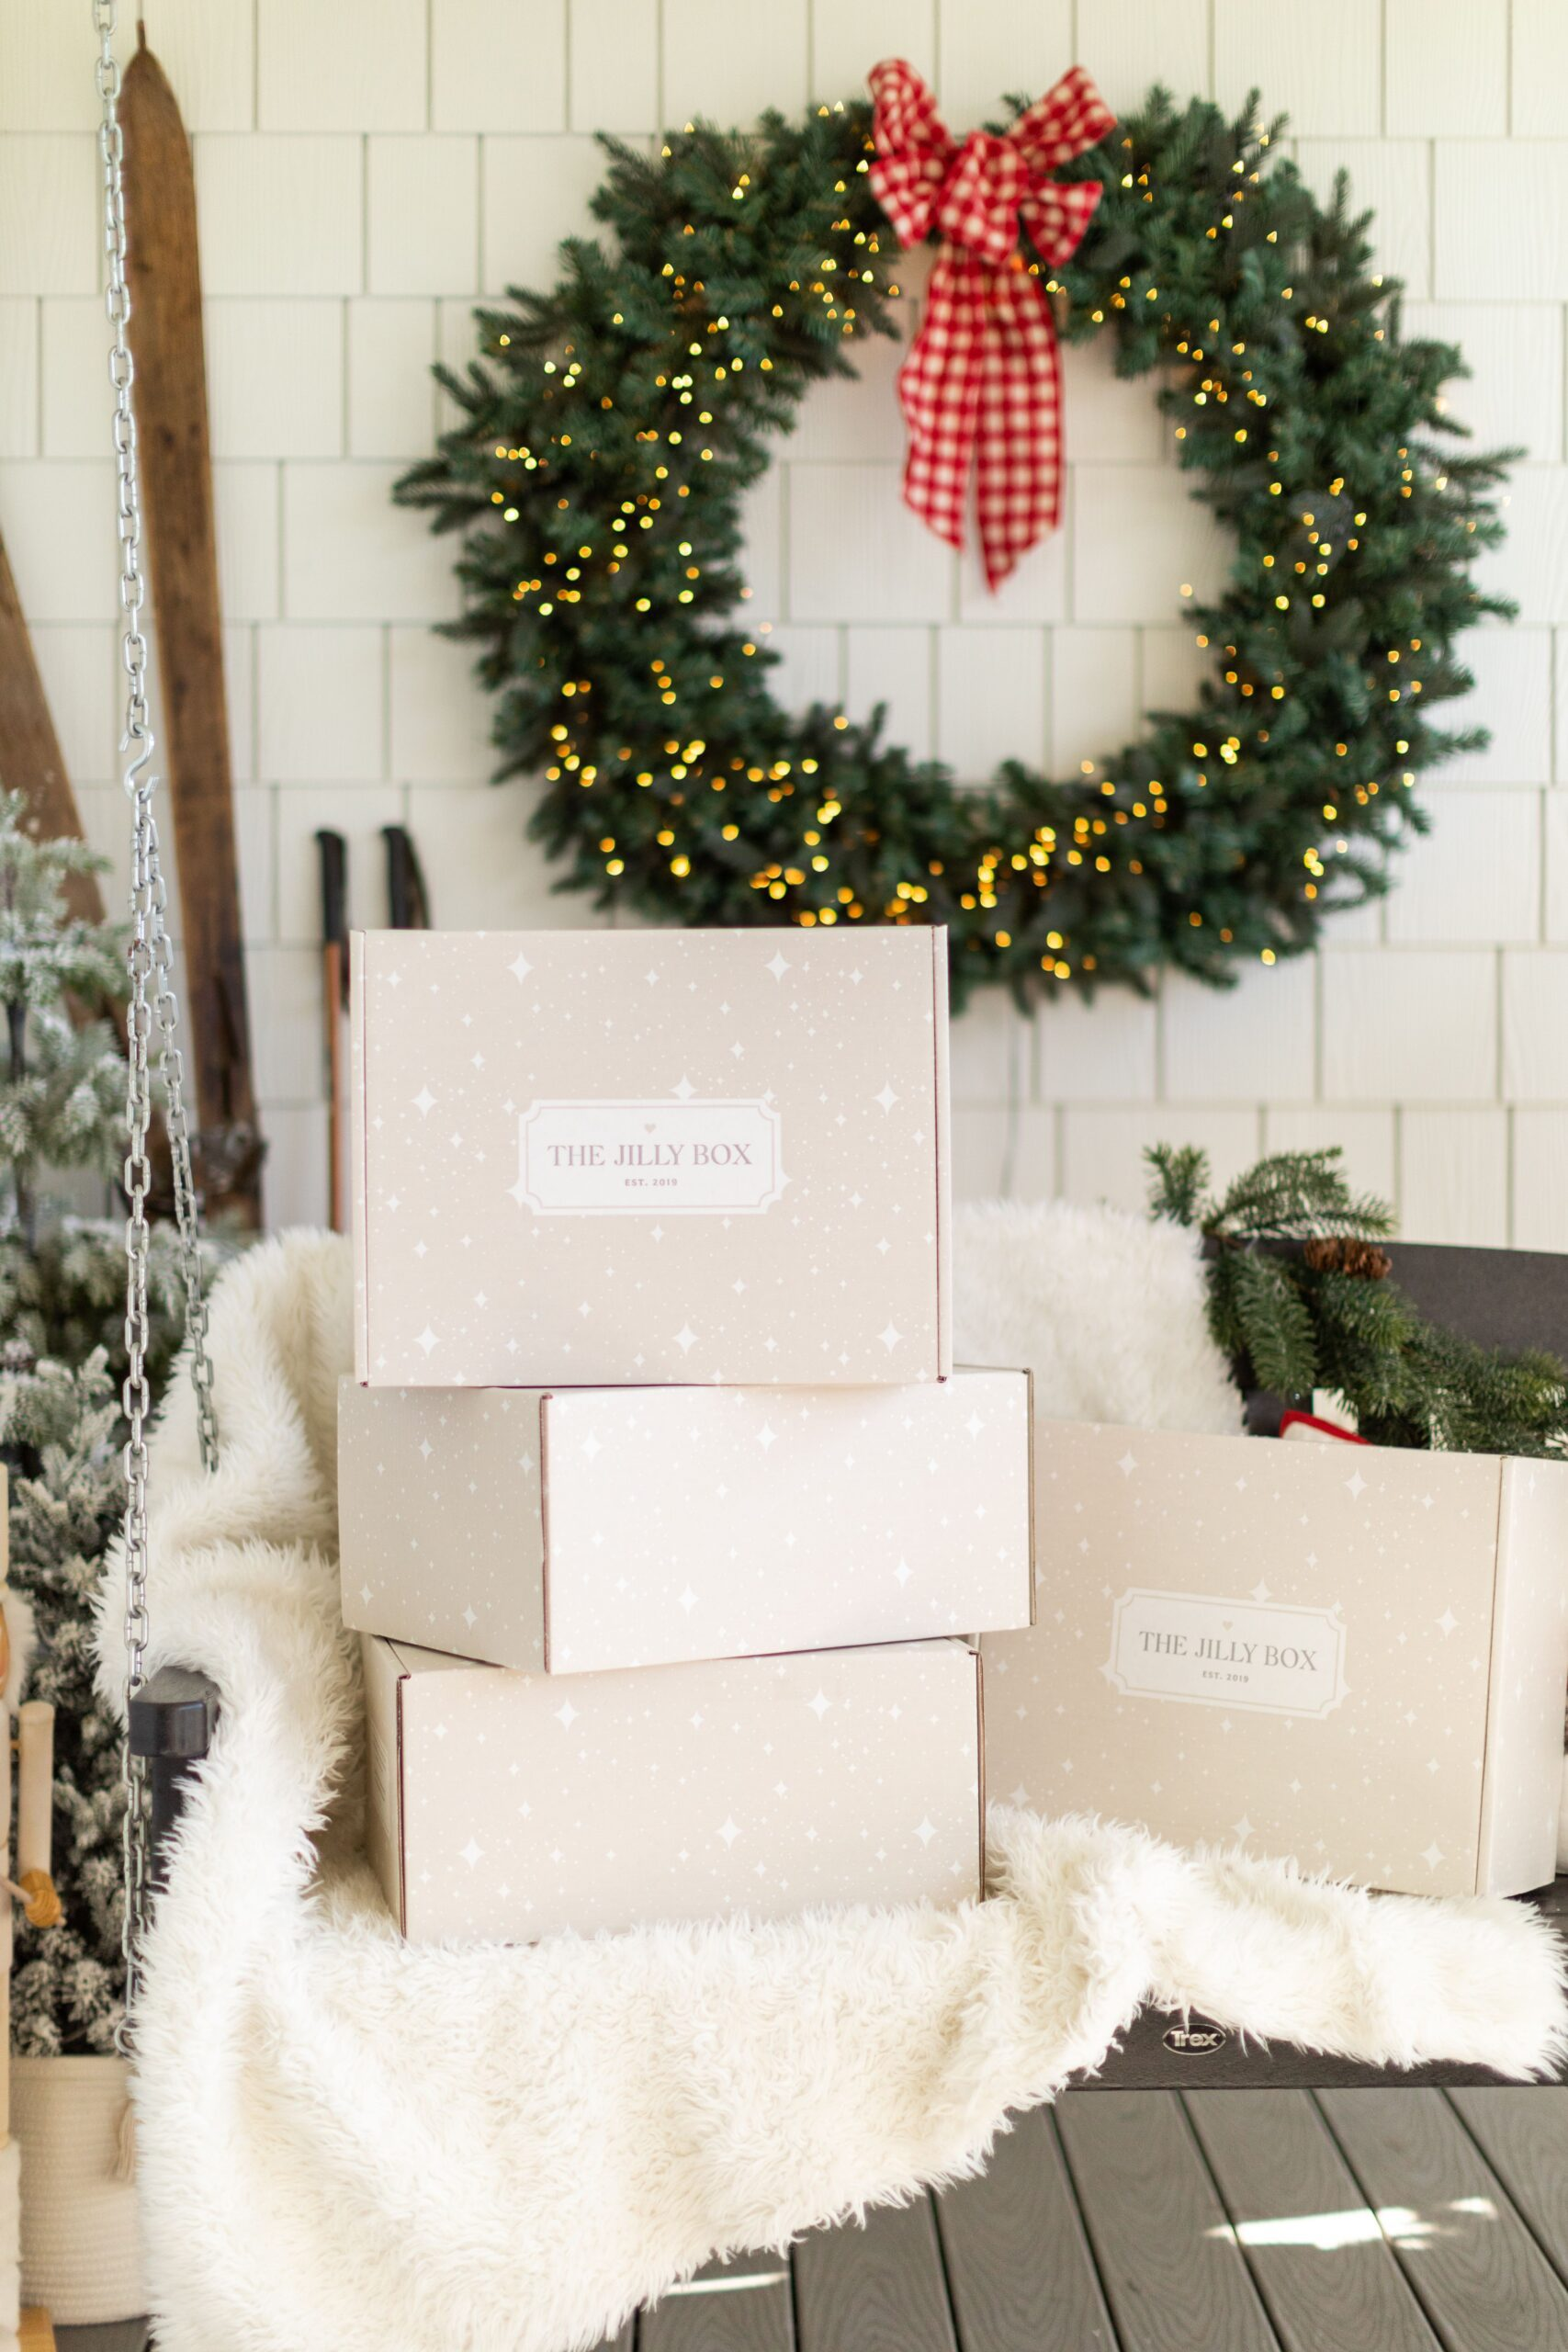 The Winter 2021 Jilly Box Add-ons are here!